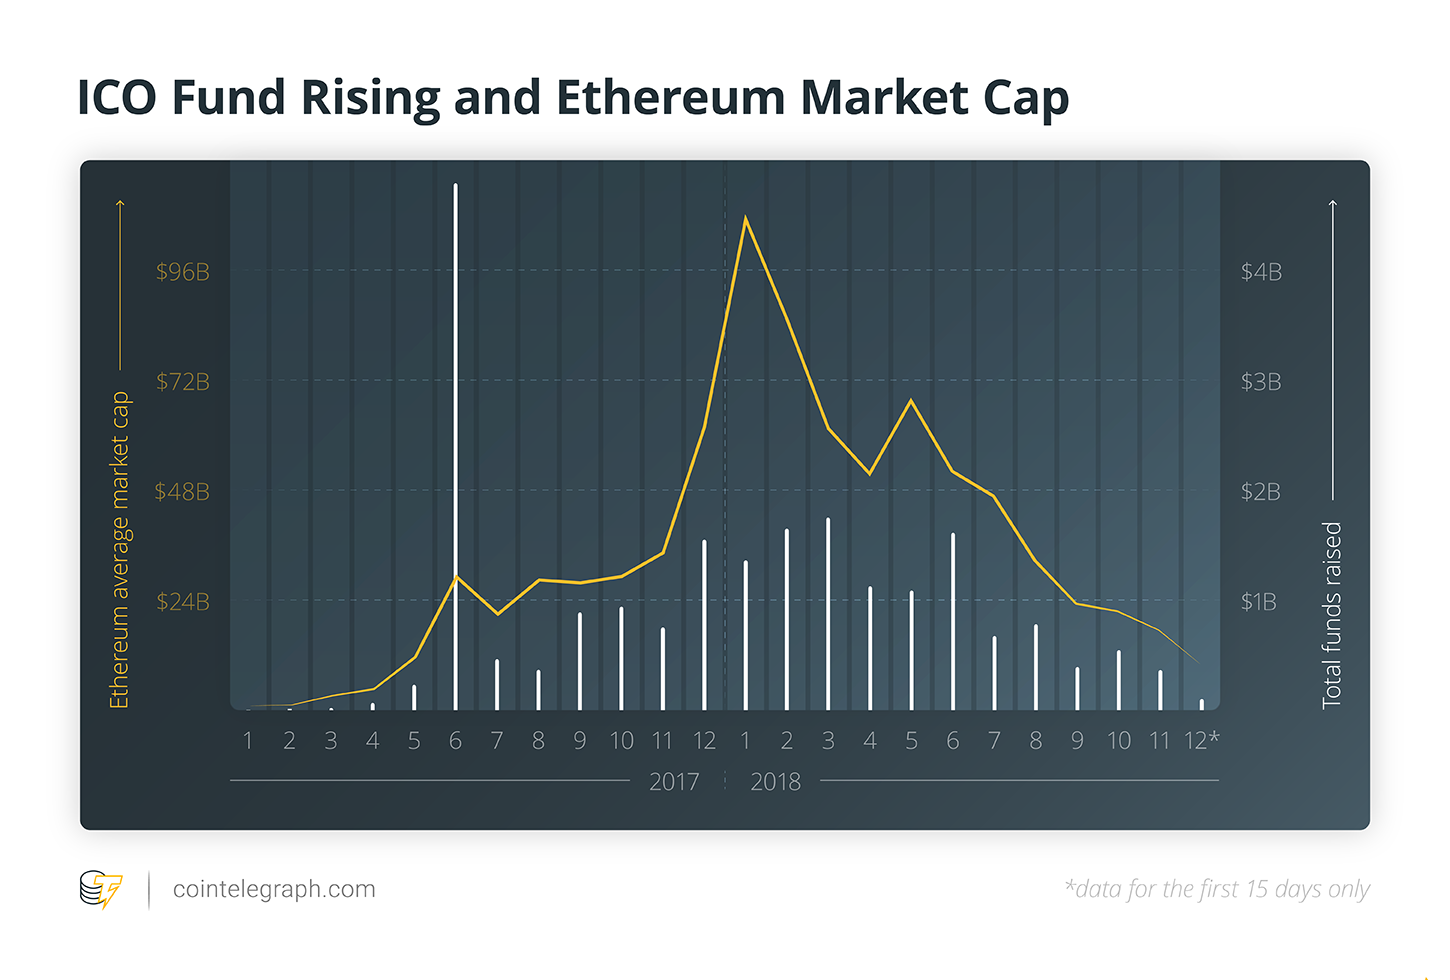 ICO Fund Rising and Ethereum Market Cap